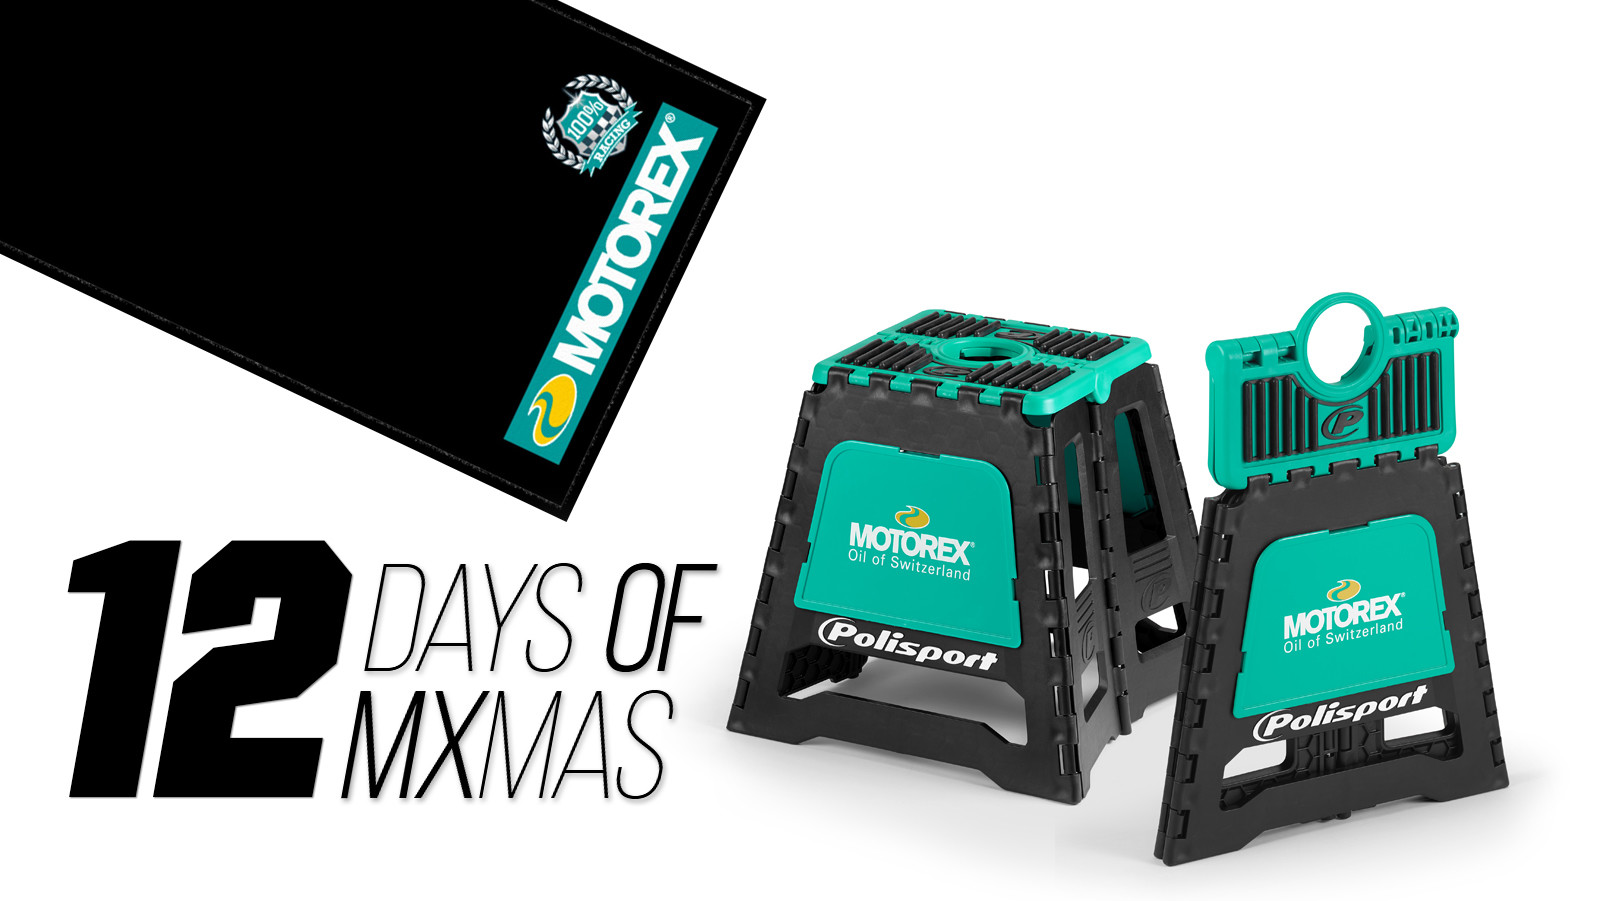 12 Days of MXmas: Motorex